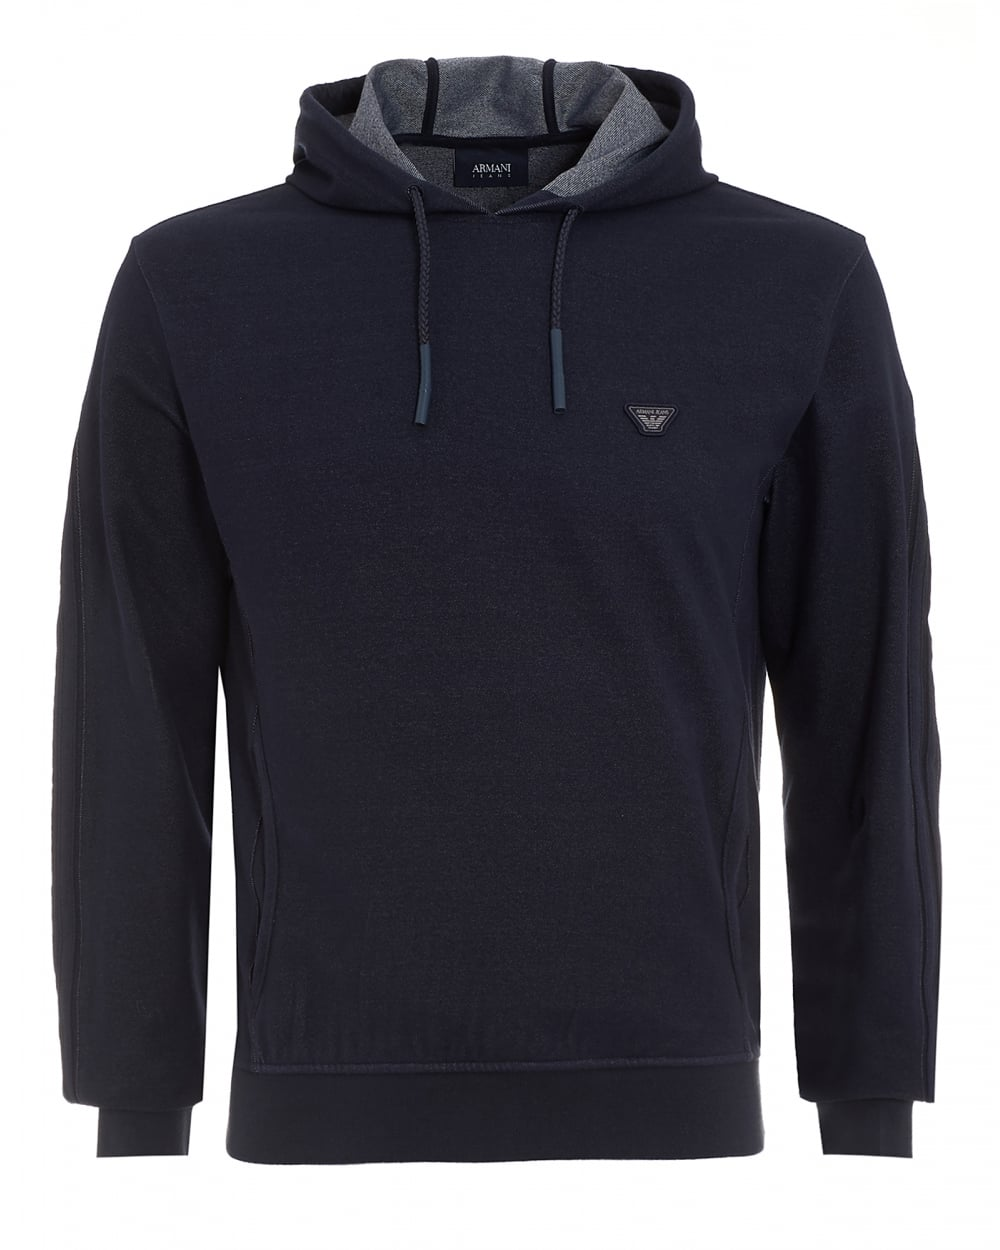 Armani Jeans Mens Hoodie Denim Effect Hooded Sweatshirt